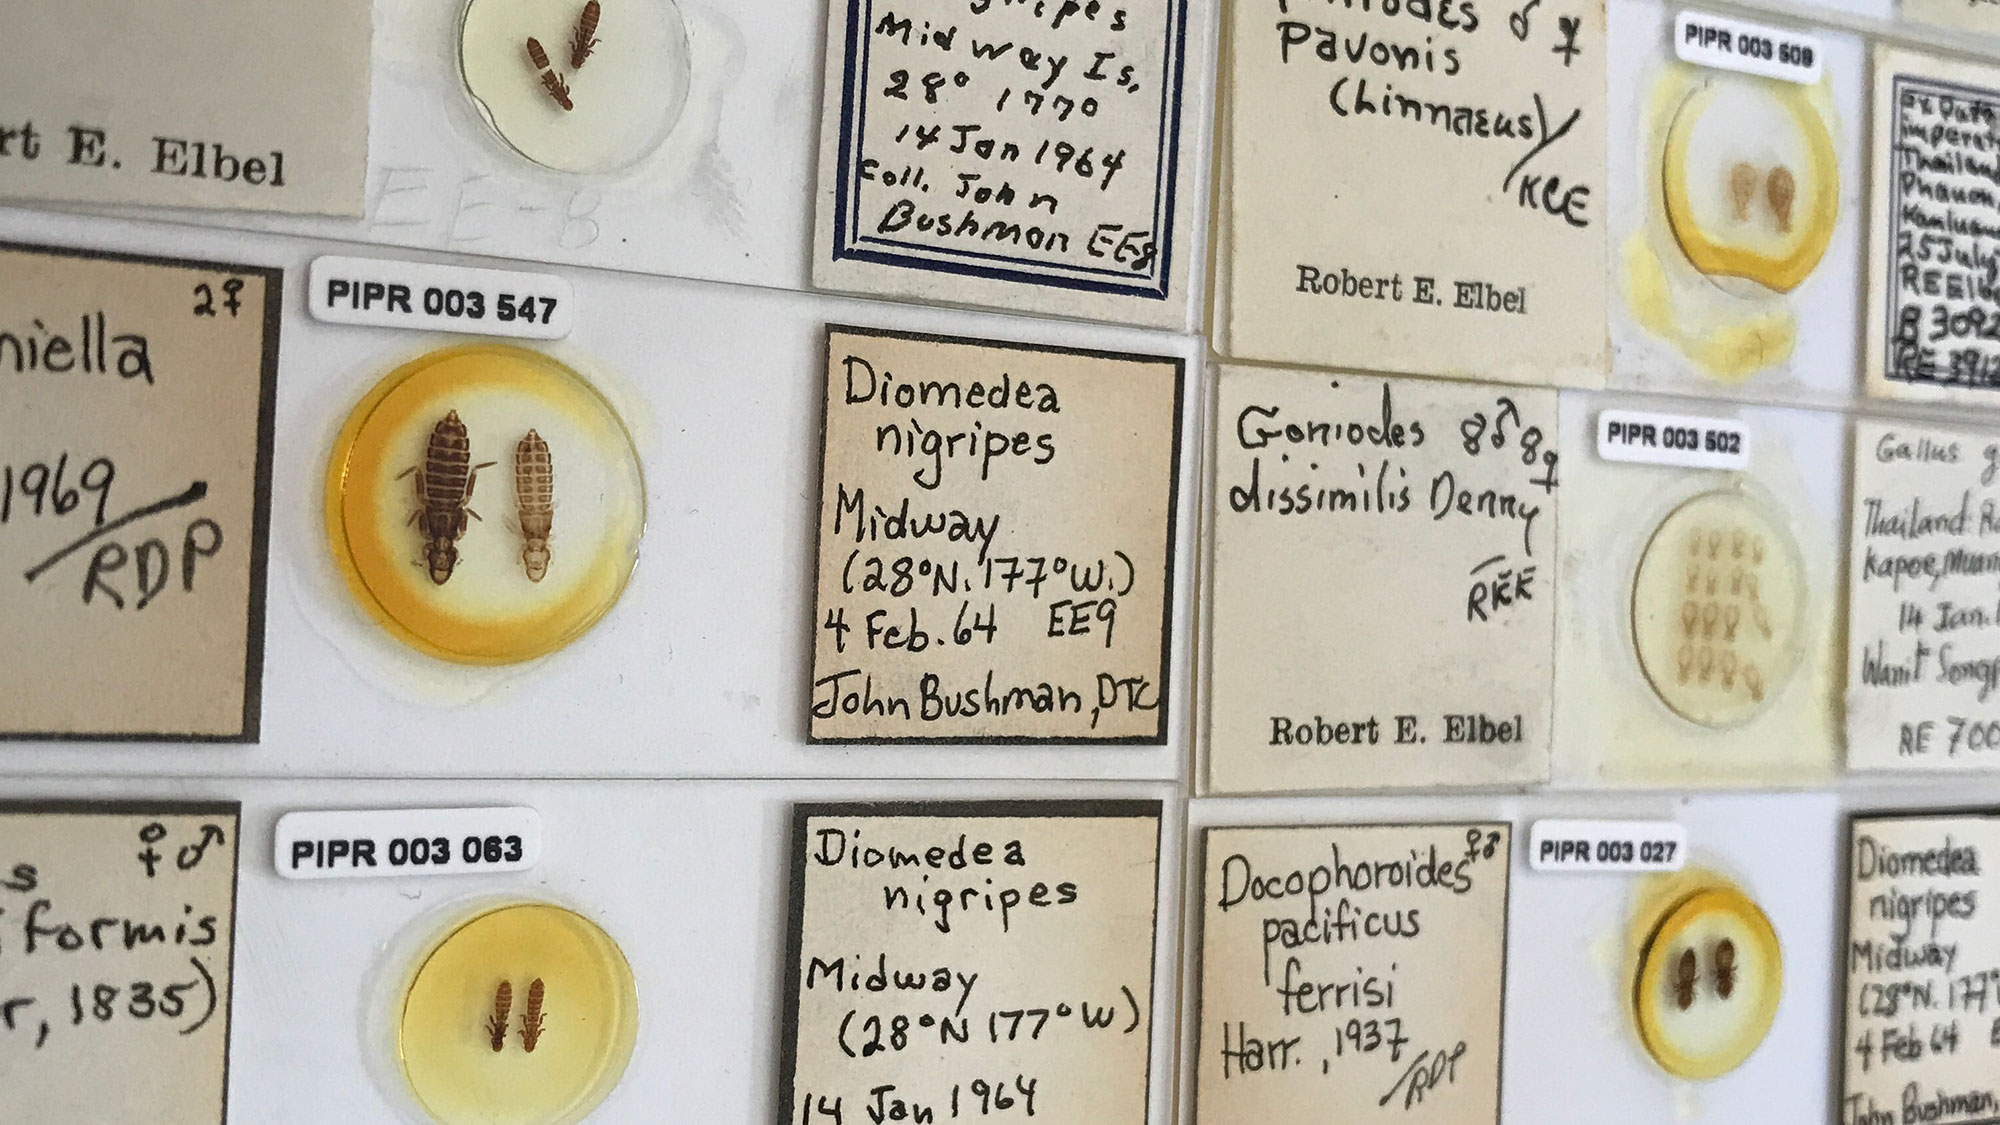 Columns and rows of microscope slides, yellowed with age, containing male and female pairs of lice with descriptions of species, genes, location found, host and more info on their labels.